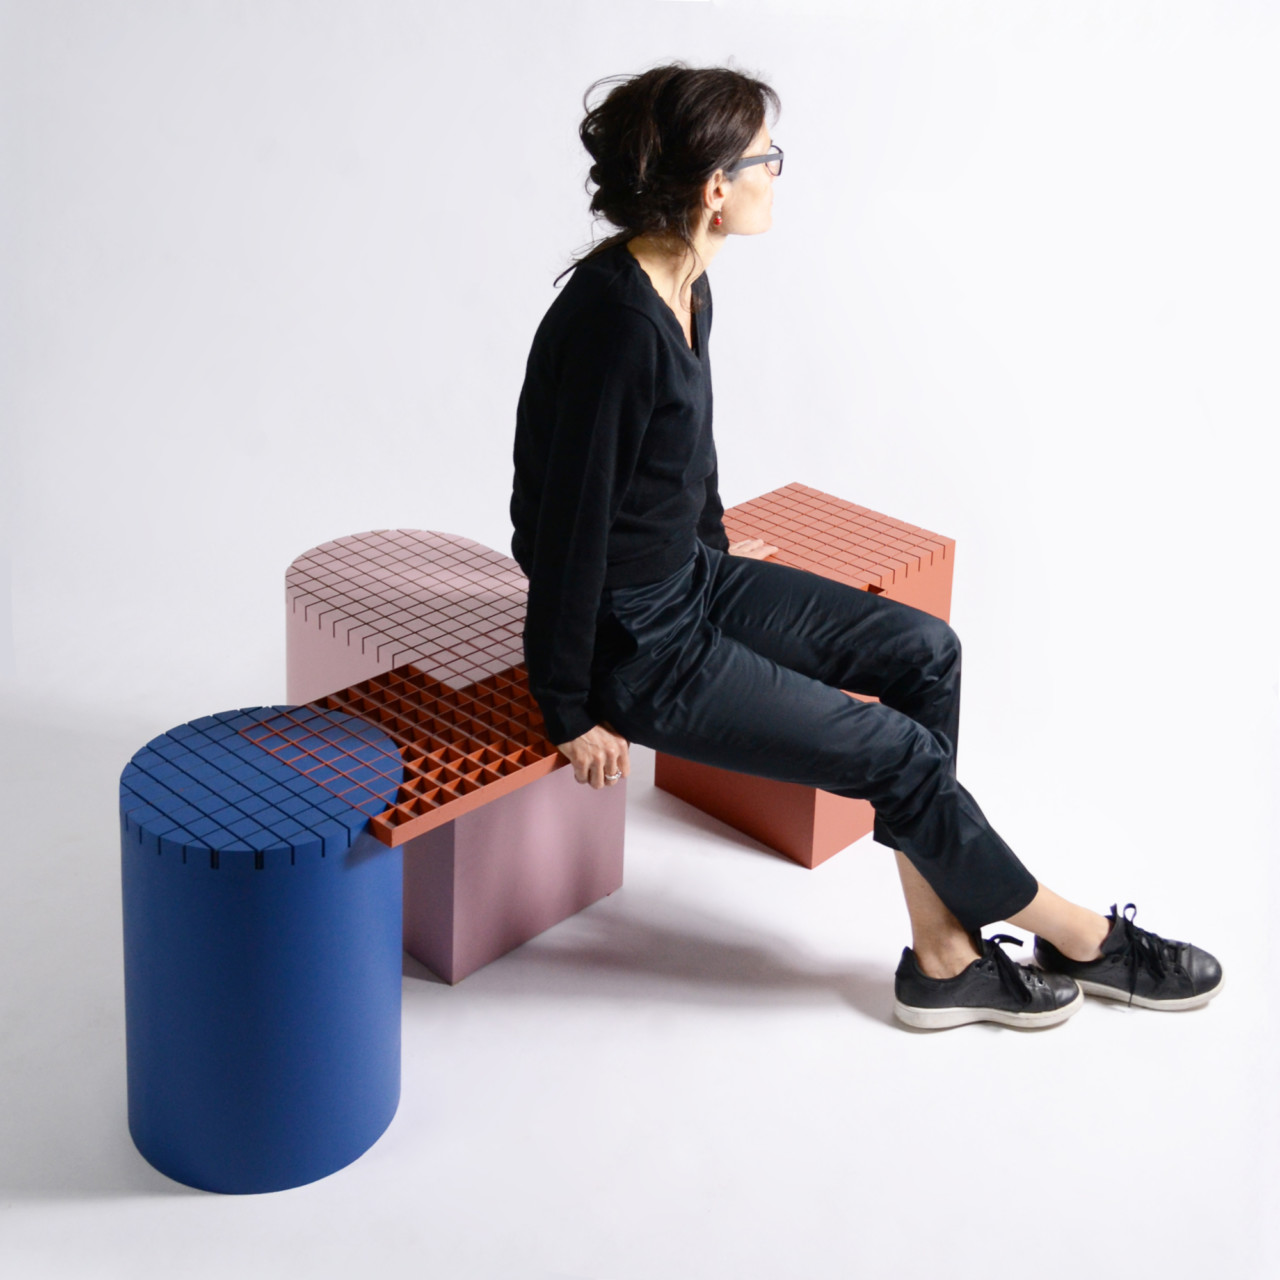 The Urban Grid Inspires nortstudio's Bench Series